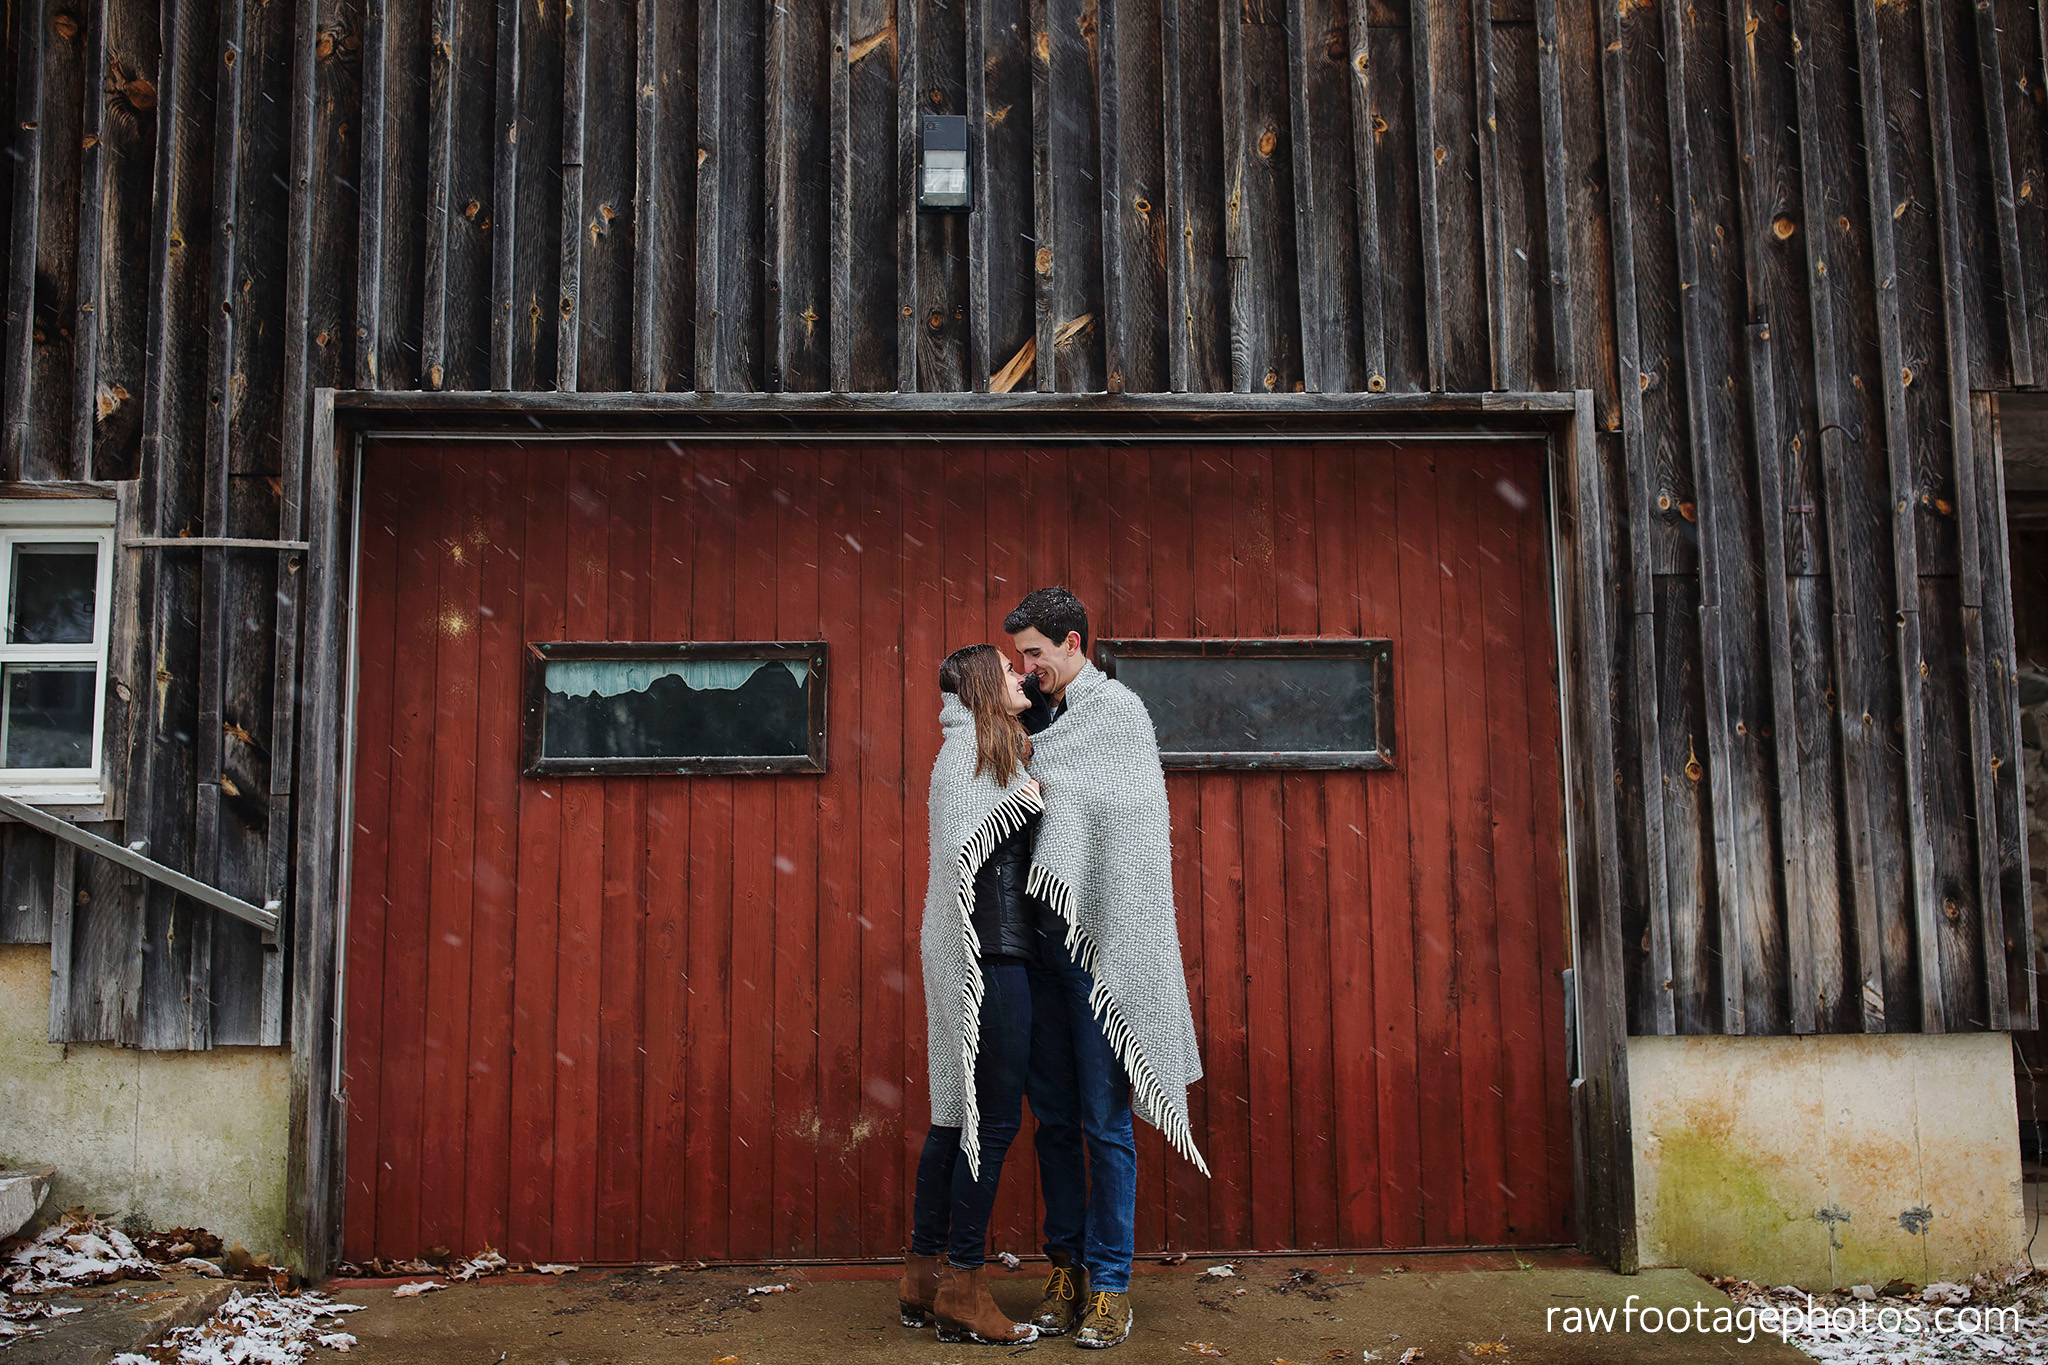 london_ontario_wedding_photographer-snowy_engagement_session-winter-barn-farm-snowflakes-blizzard-raw_footage_photography022.jpg